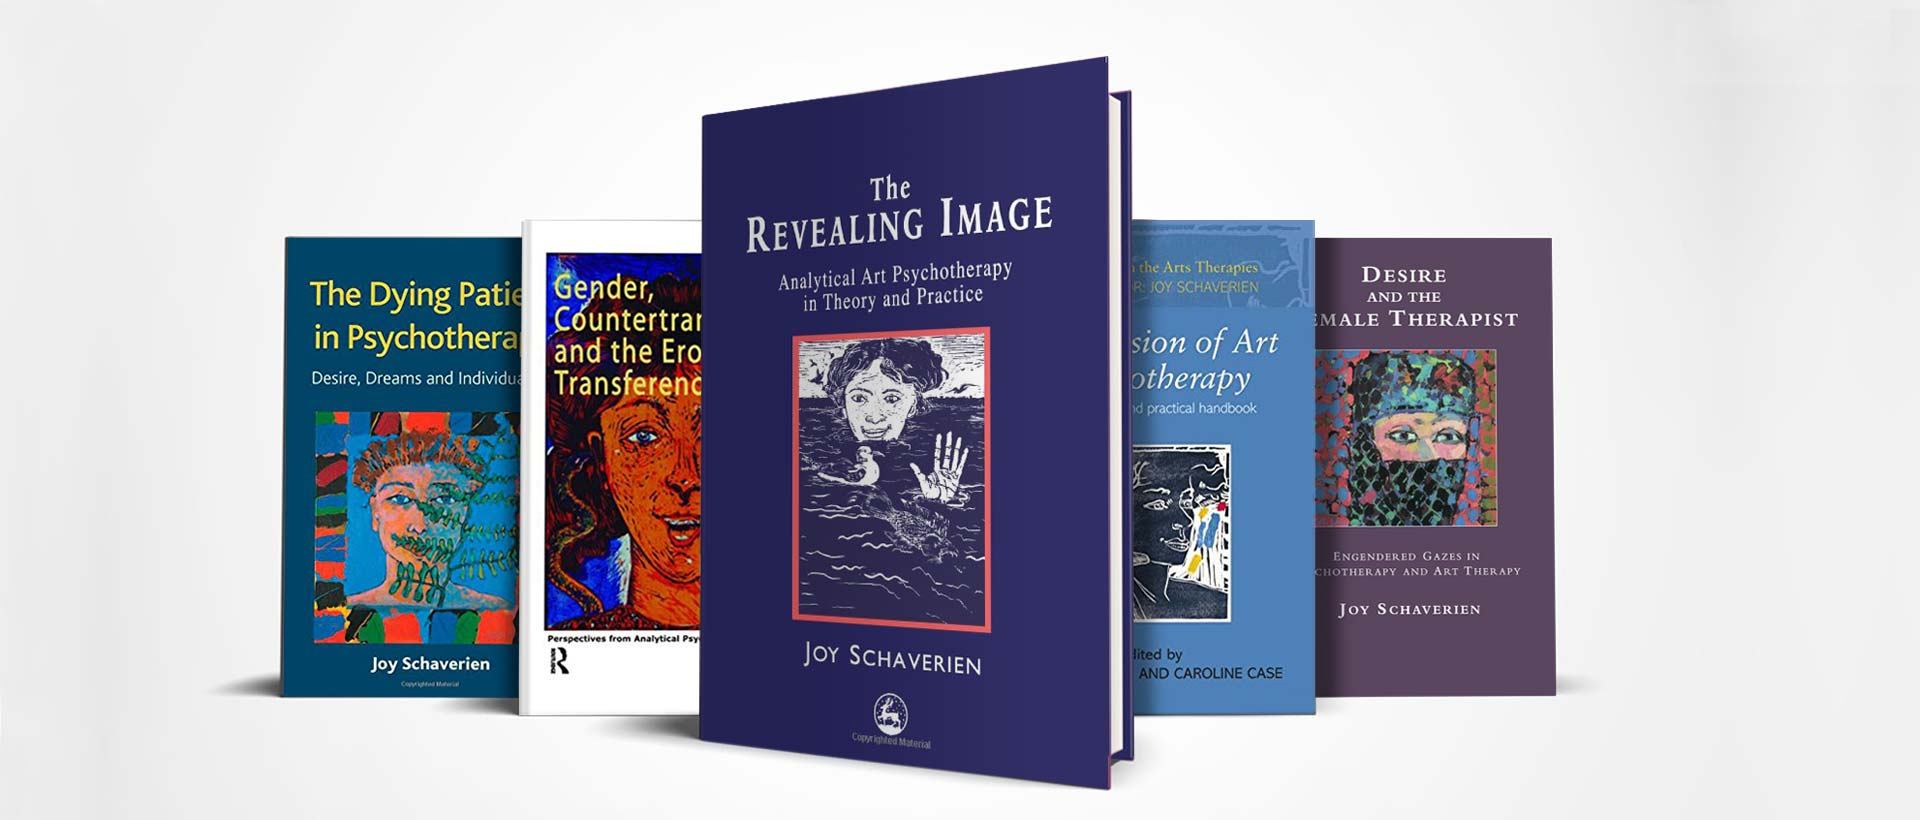 Other books by Joy Schaverien on topics of: